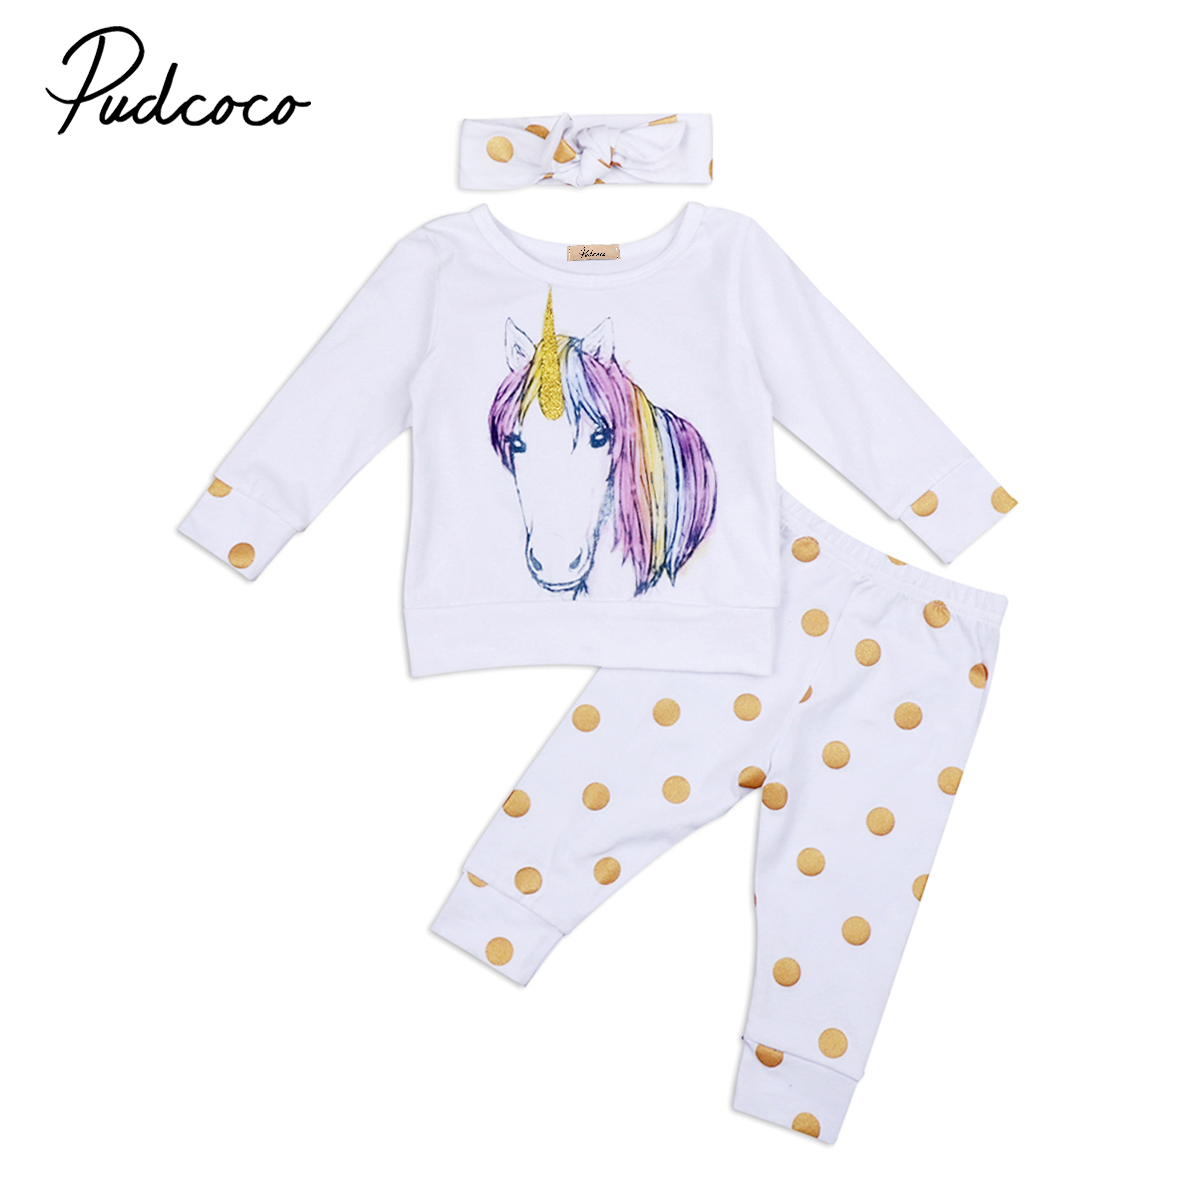 Babies 3  PCS  Unicorn Clothing Set Newborn Baby Boy Girl Kid Unicorns Polka Dots Outfit Clothes T-shirt Top Pants Headband Sets 2pcs set cotton spring autumn baby boy girl clothing sets newborn clothes set for babies boy clothes suit shirt pants infant set